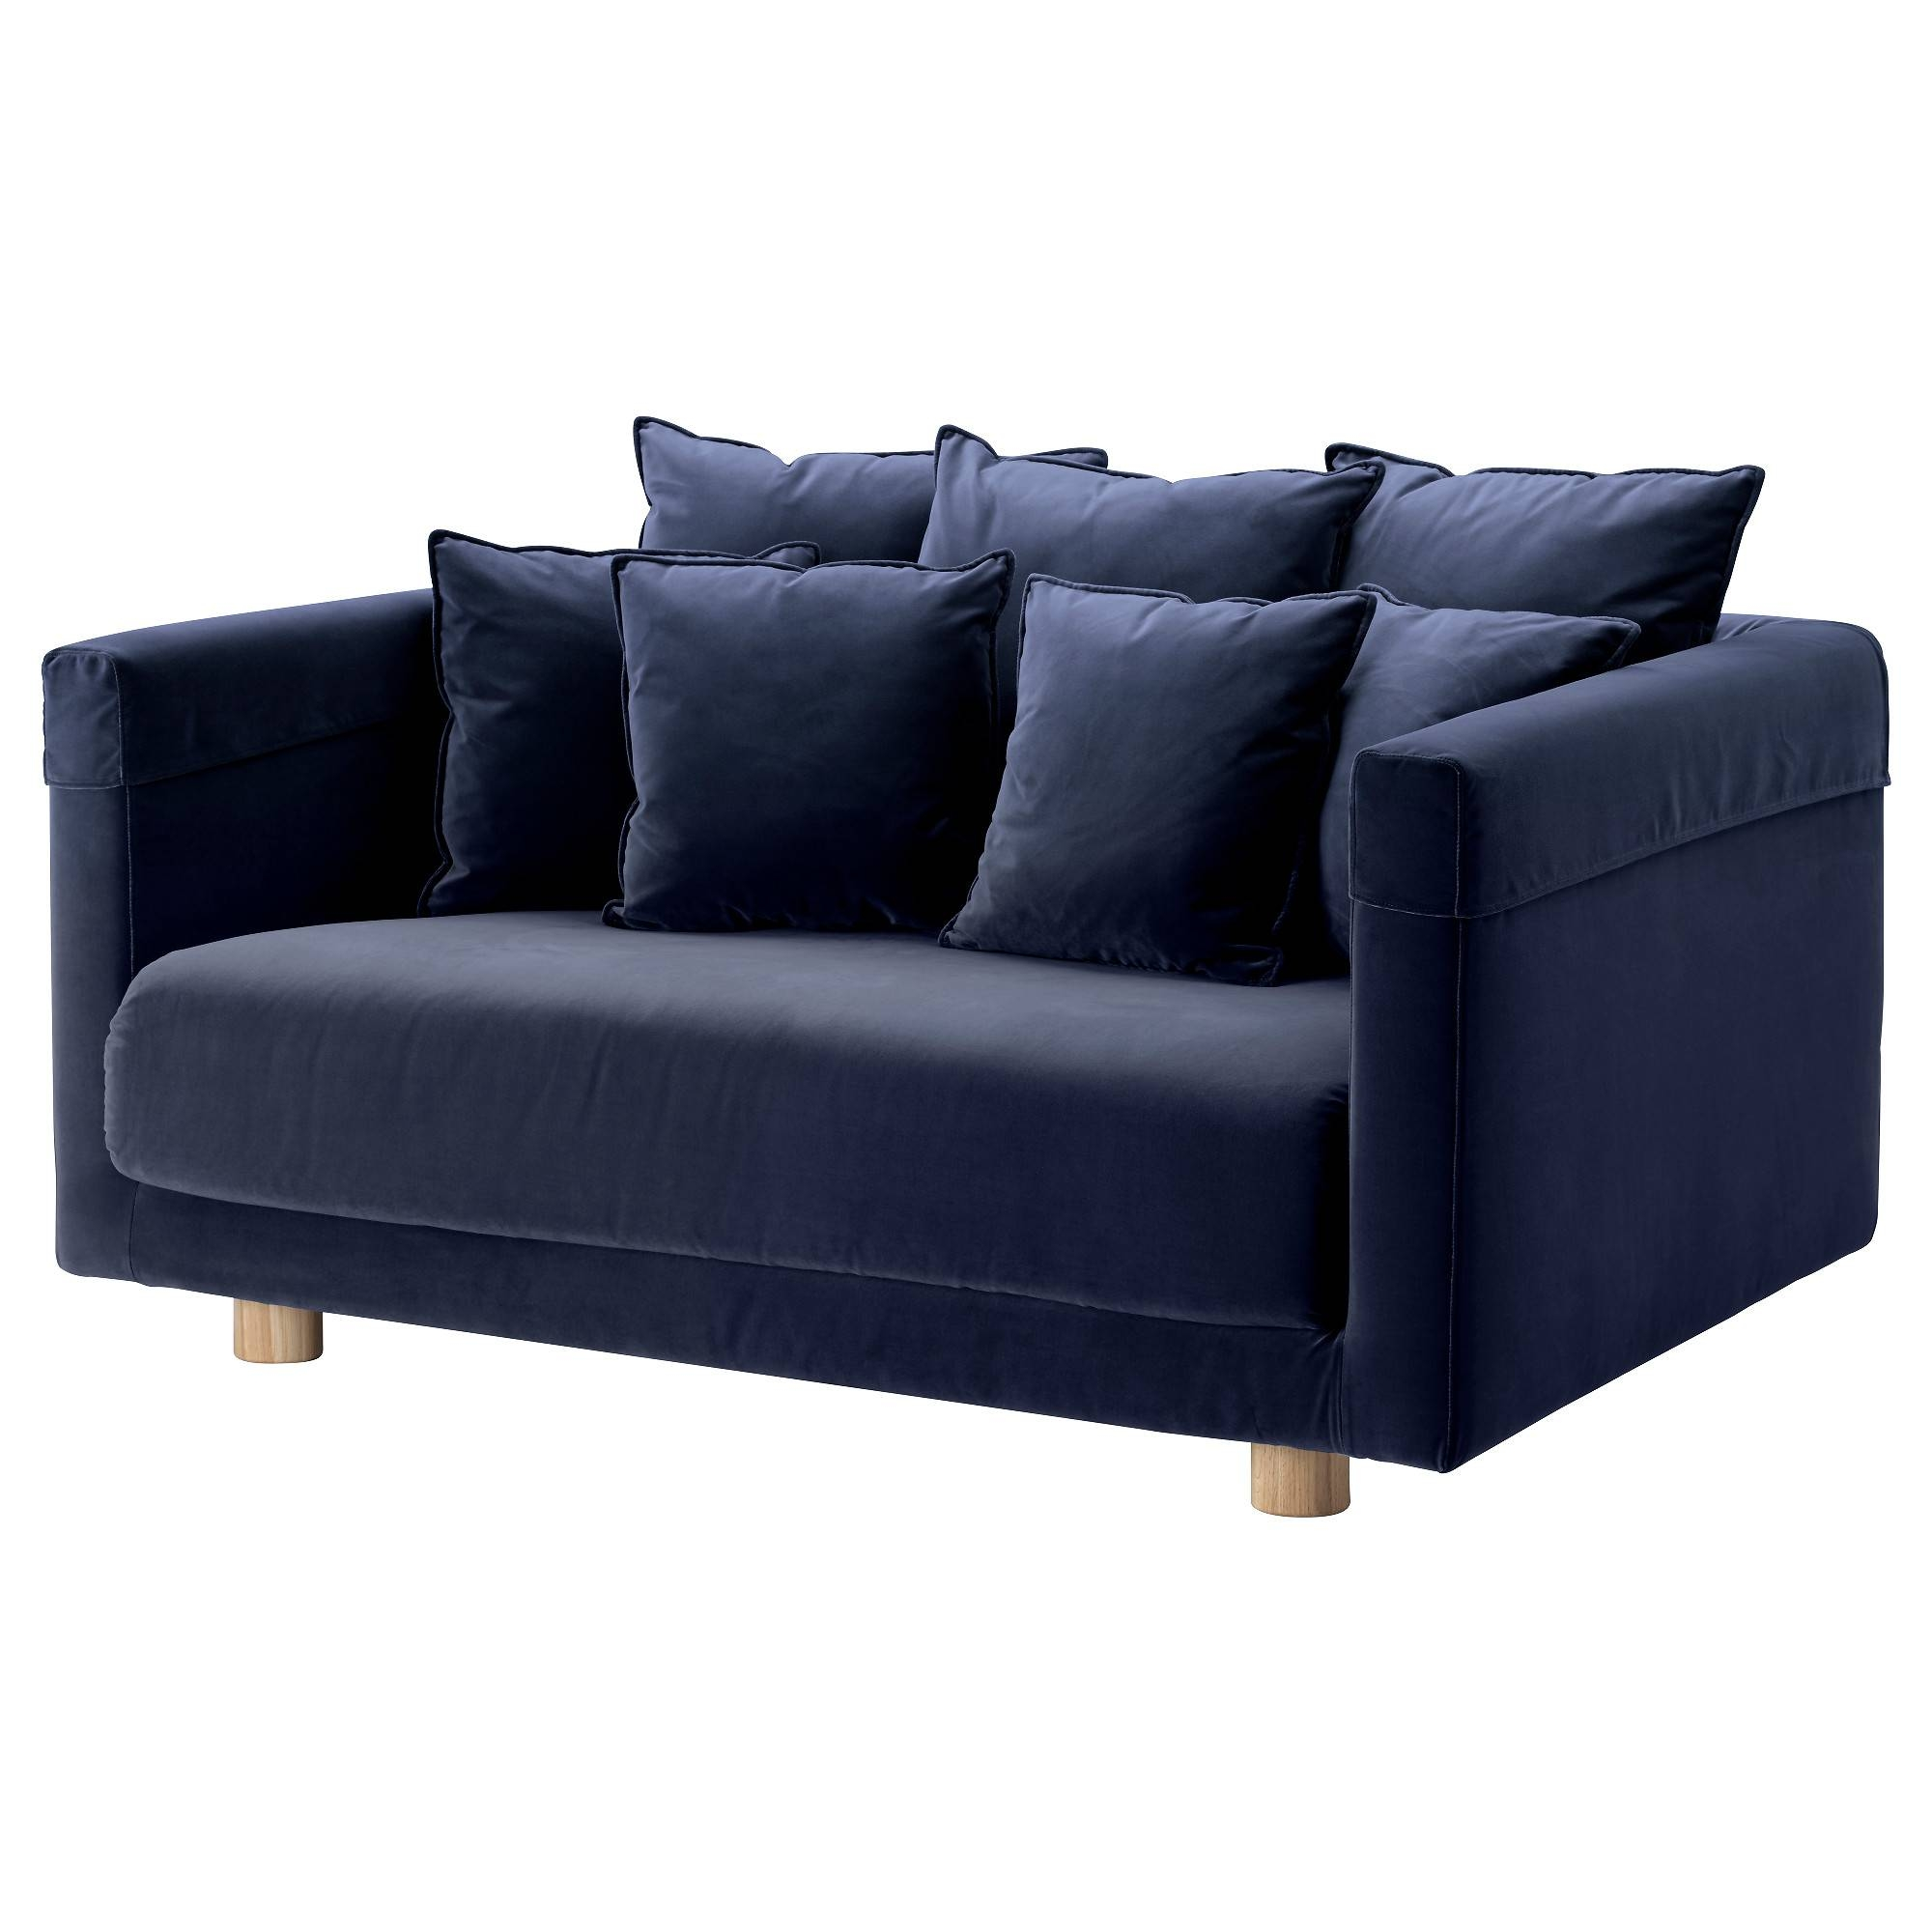 Stockholm 2017 Two-Seat Sofa Sandbacka Dark Blue - Ikea regarding Ikea Two Seater Sofas (Image 23 of 30)